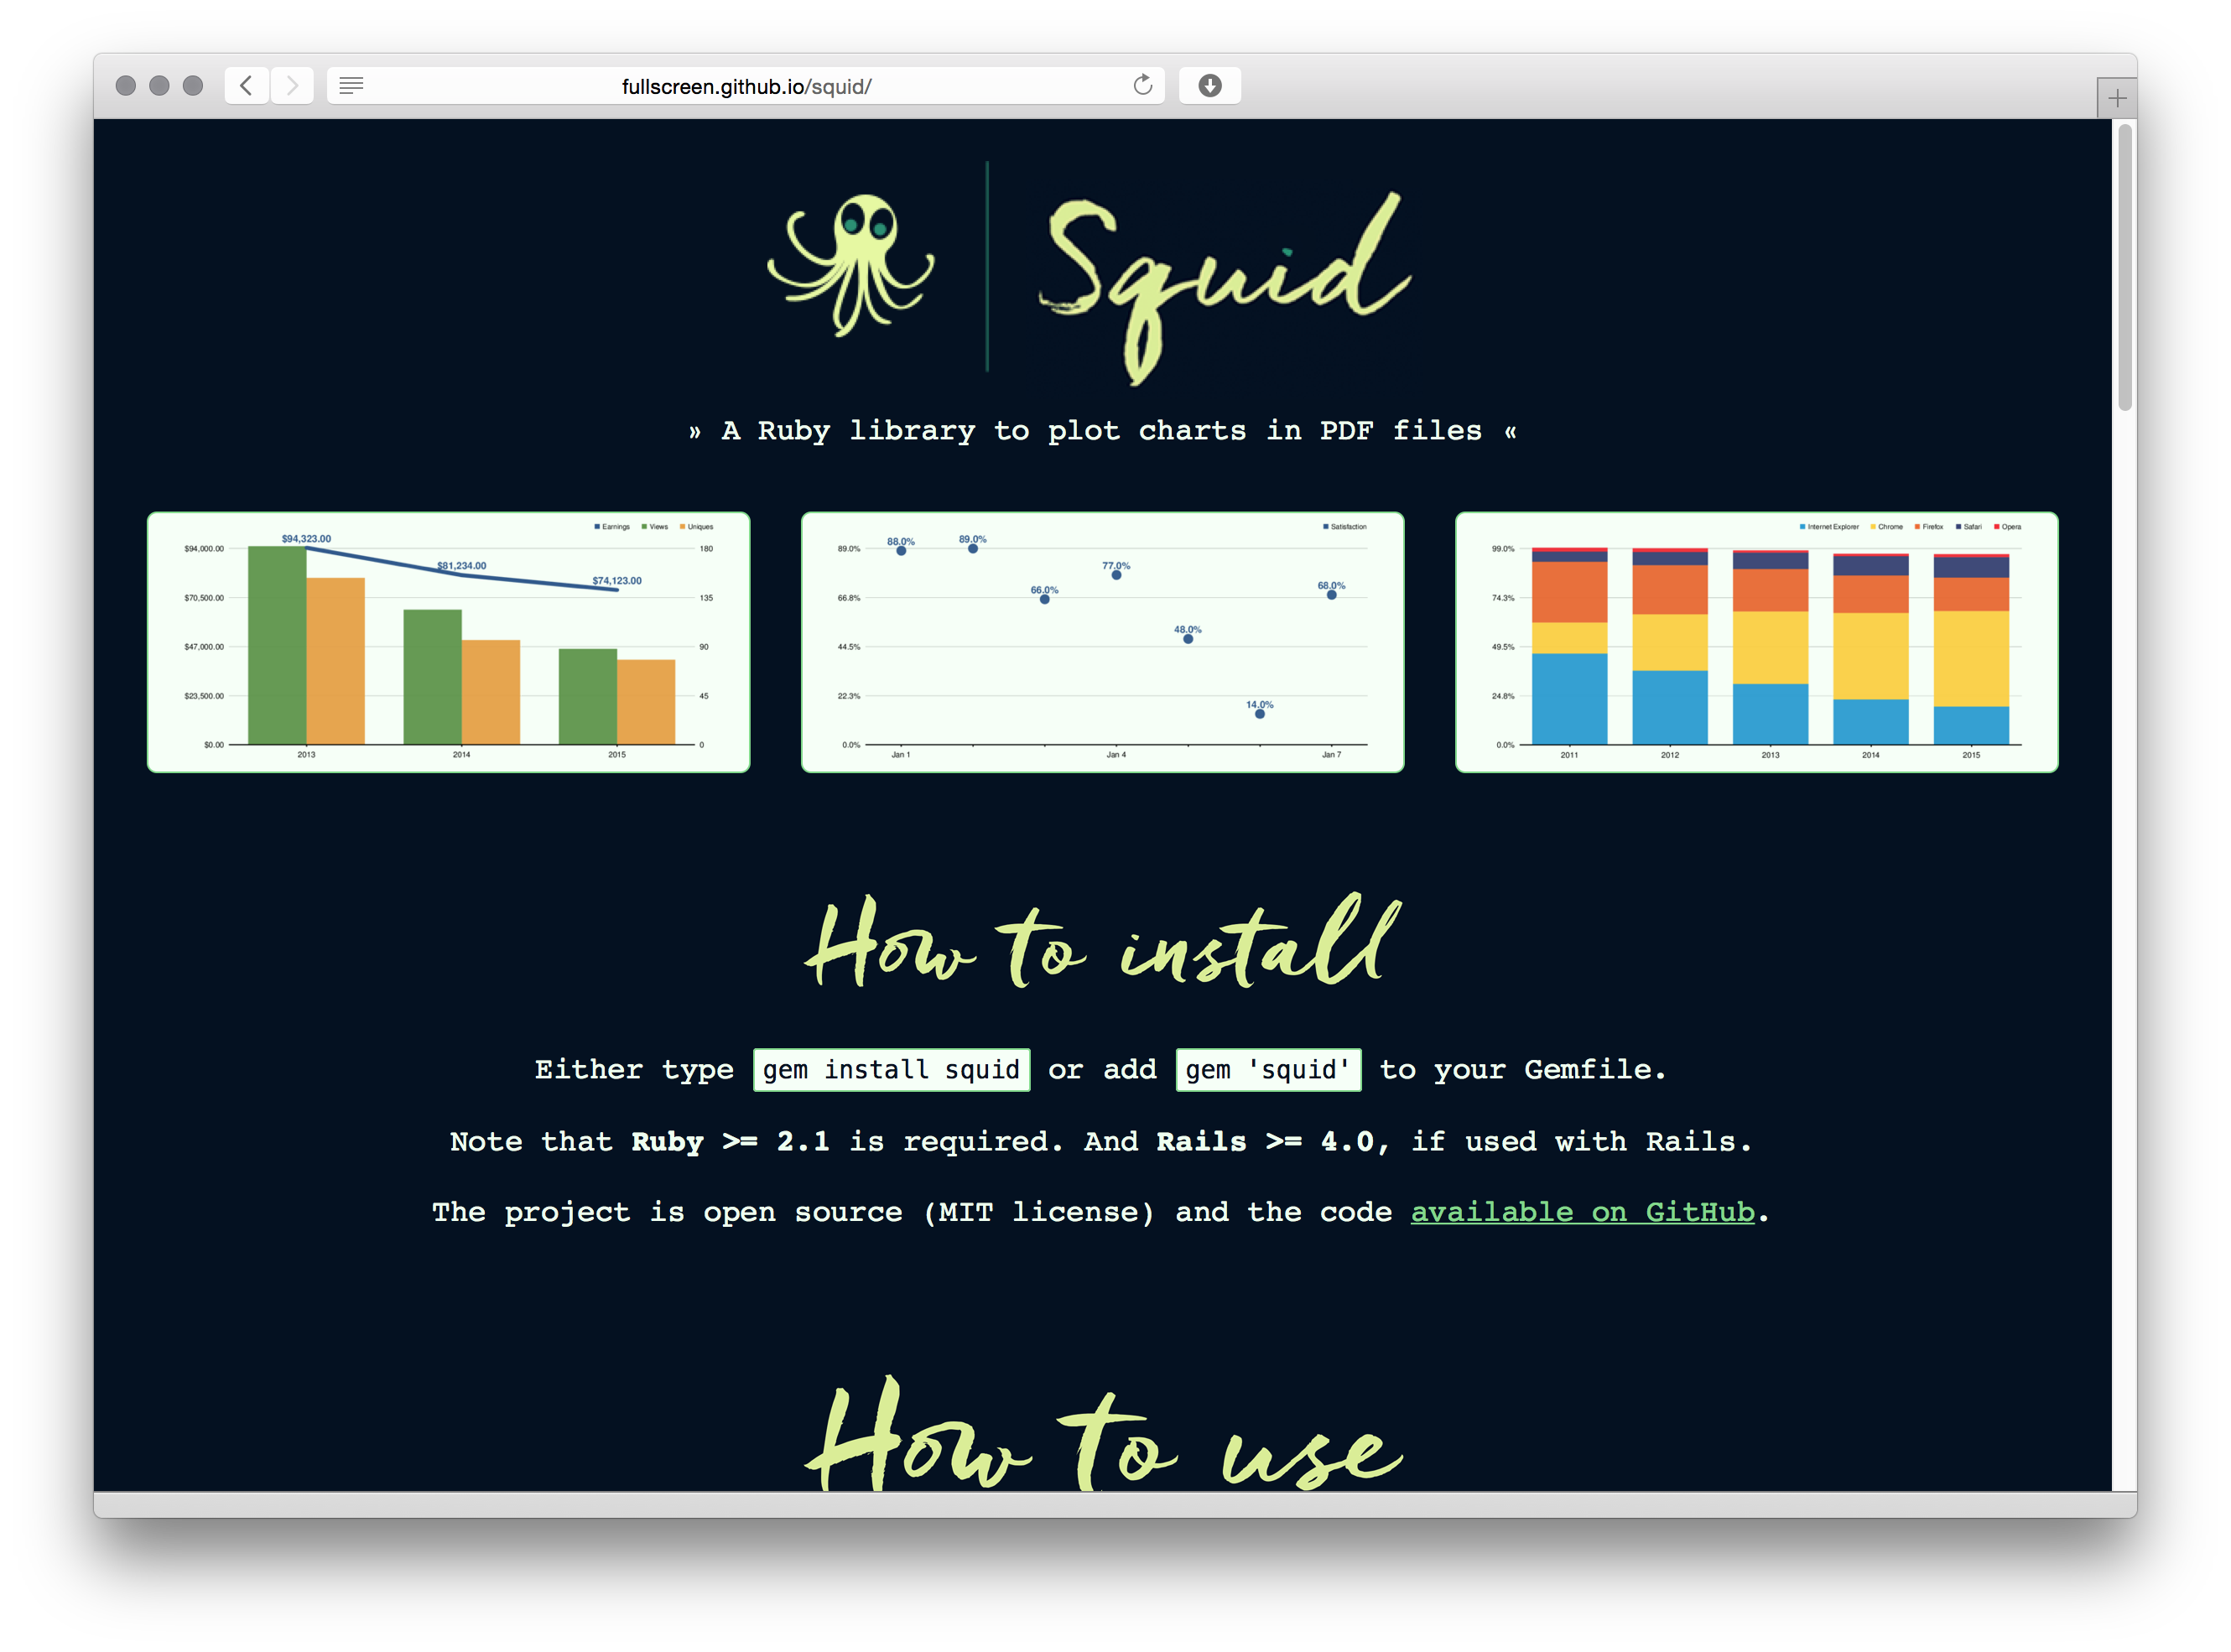 Squid homepage